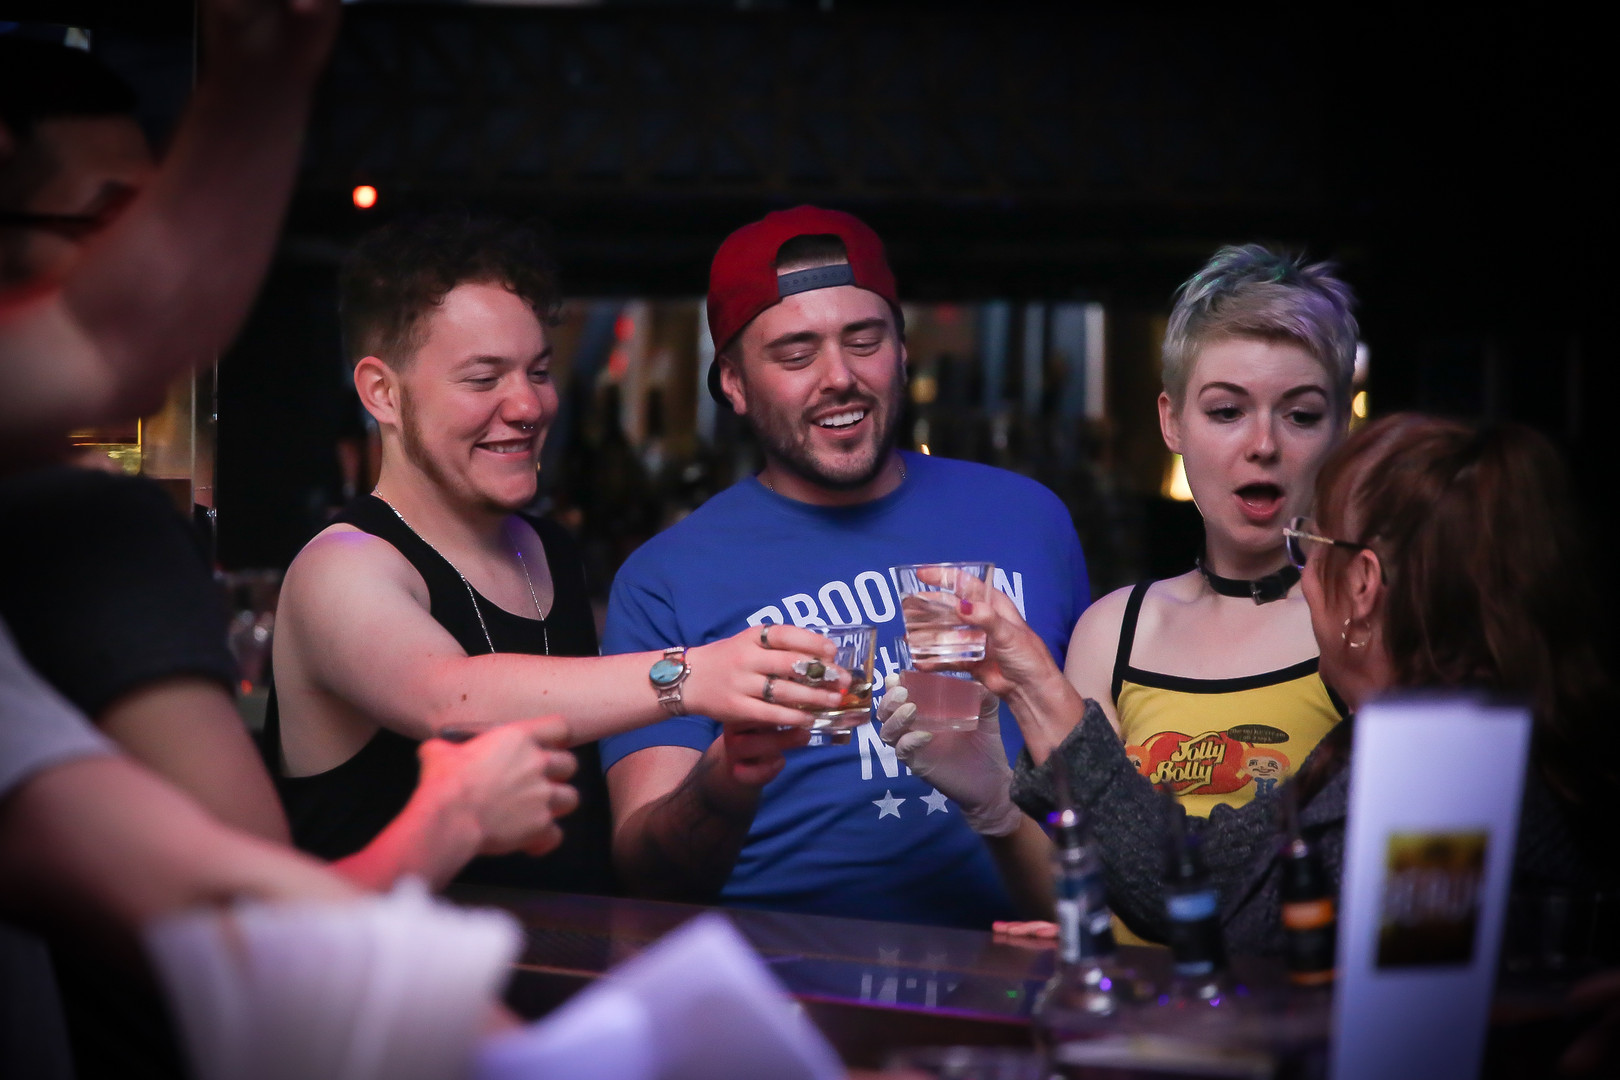 Storment takes a shot with friends at Beaux in the Castro, San Francisco on May 13.   Storment hosts Vamp Mondays, which is a trans and queer dedicated nightlife party on Monday nights. (Photo: Adelyna Tirado)